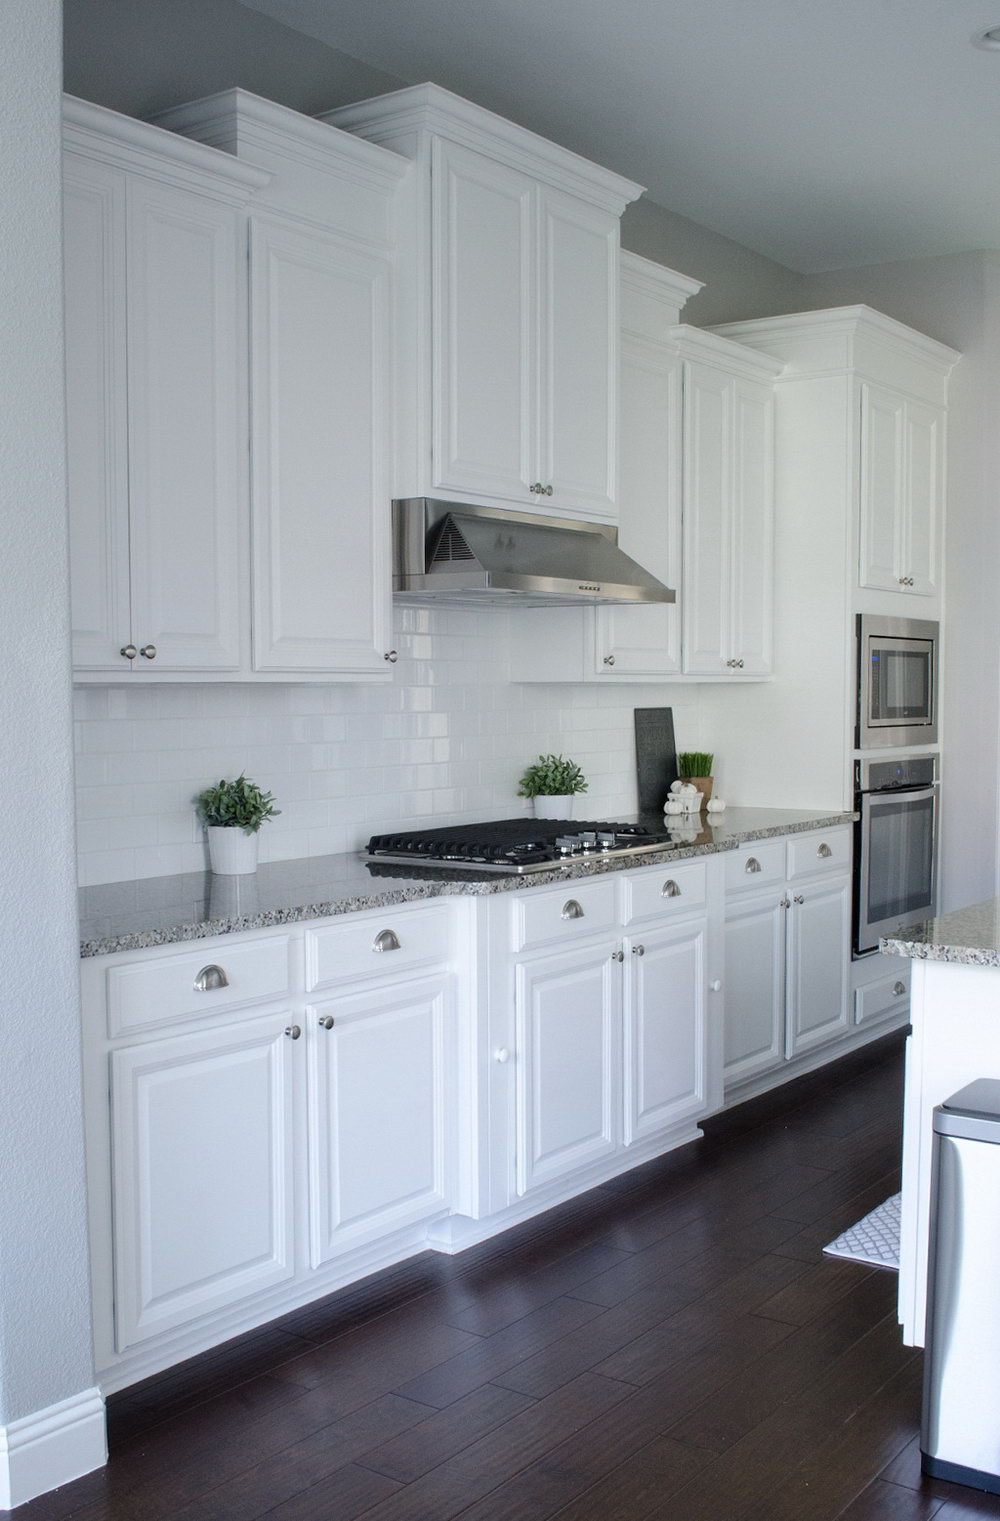 Youtube Painting Kitchen Cabinets White